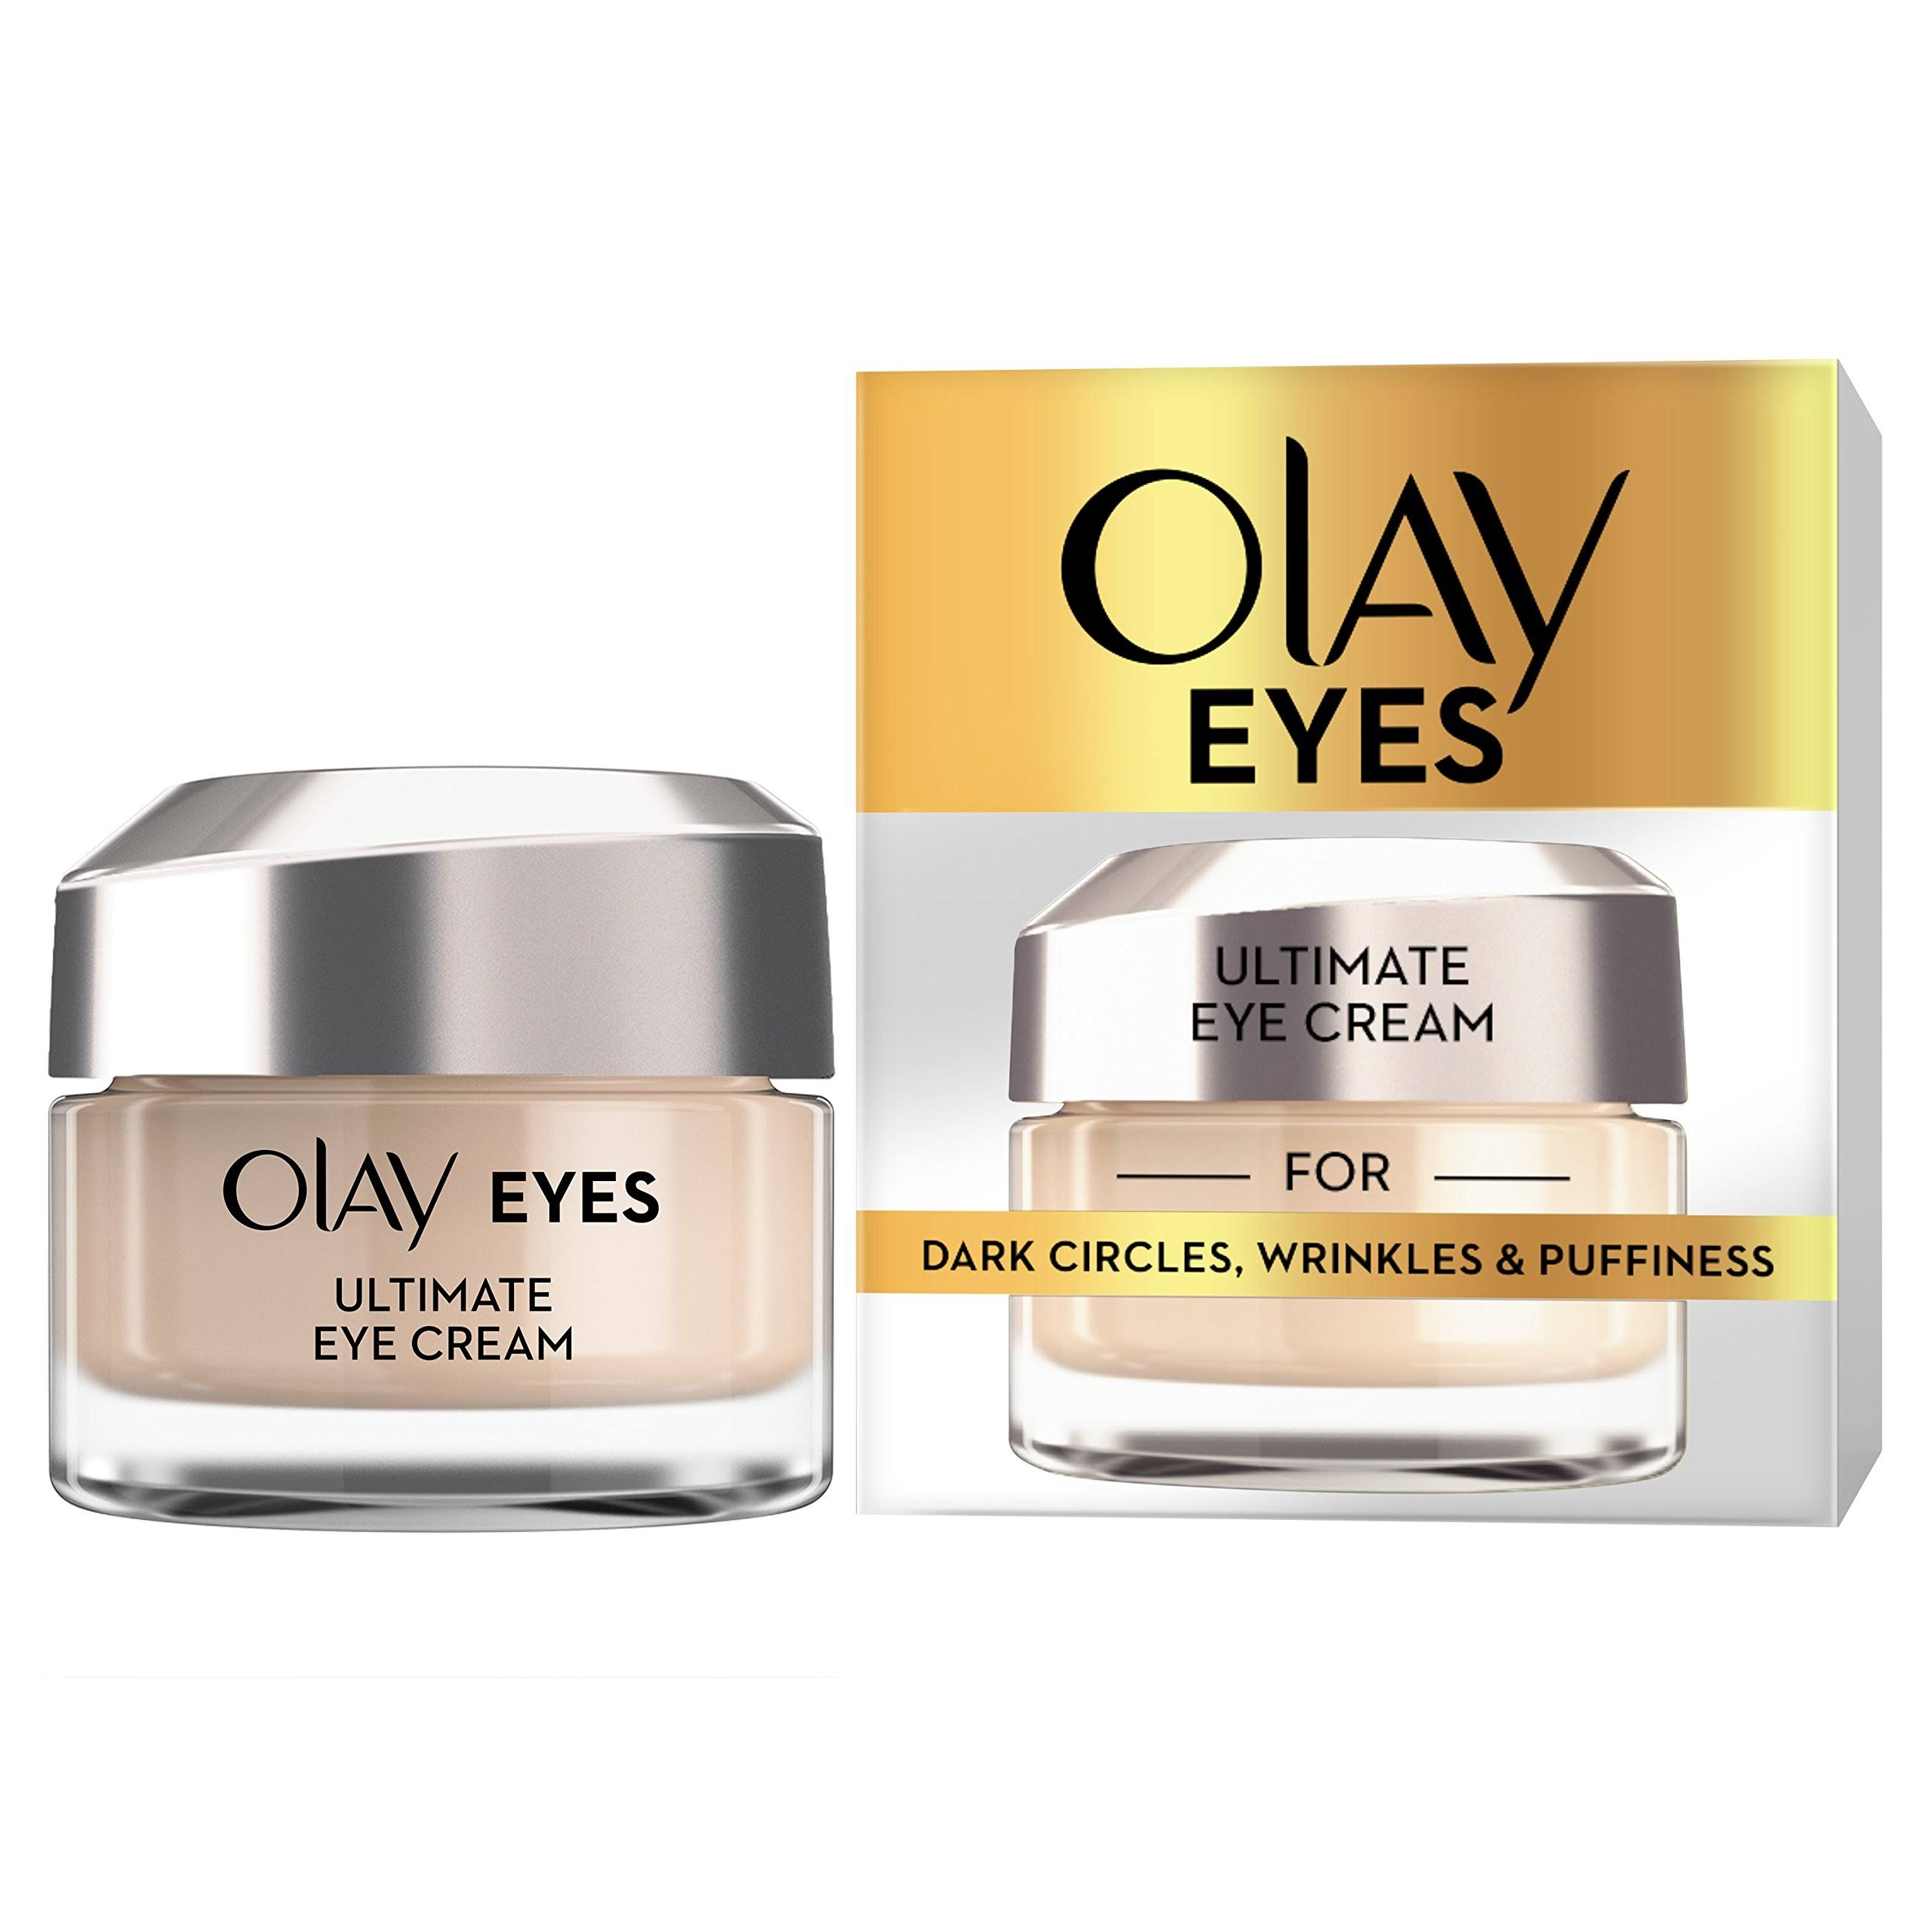 Olay Eyes Ultimate Eye Cream - 15ml